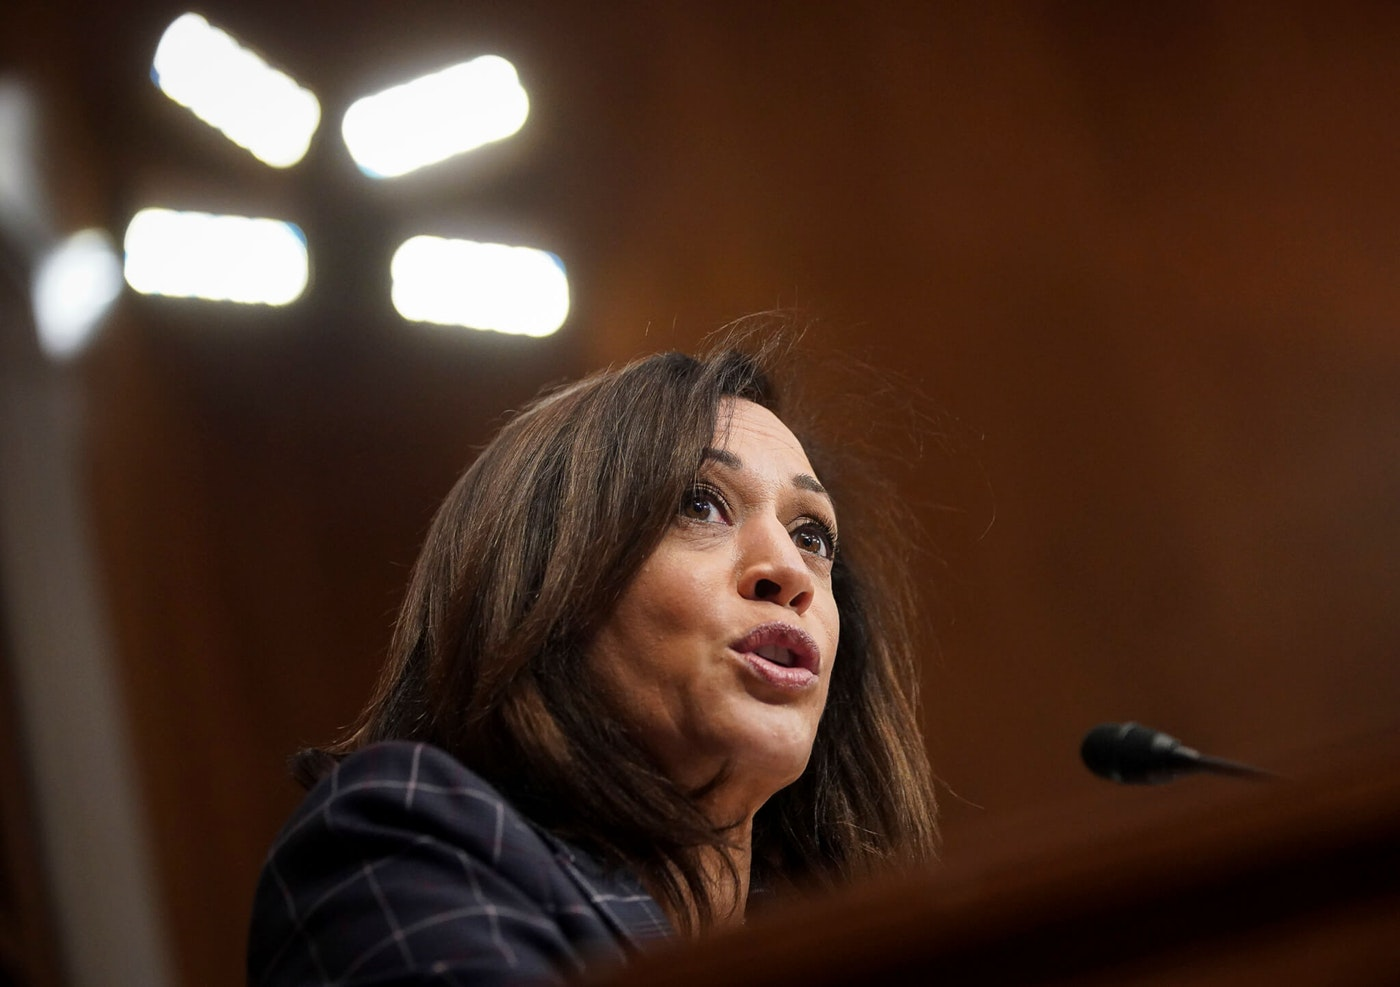 Sen. Kamala Harris, D-Calif., speaks in a US Senate committee in June on Capitol Hill in Washington. The vice presidential candidate spoke in a virtual stop Friday for North Carolina. (Alexander Drago/Pool via AP)